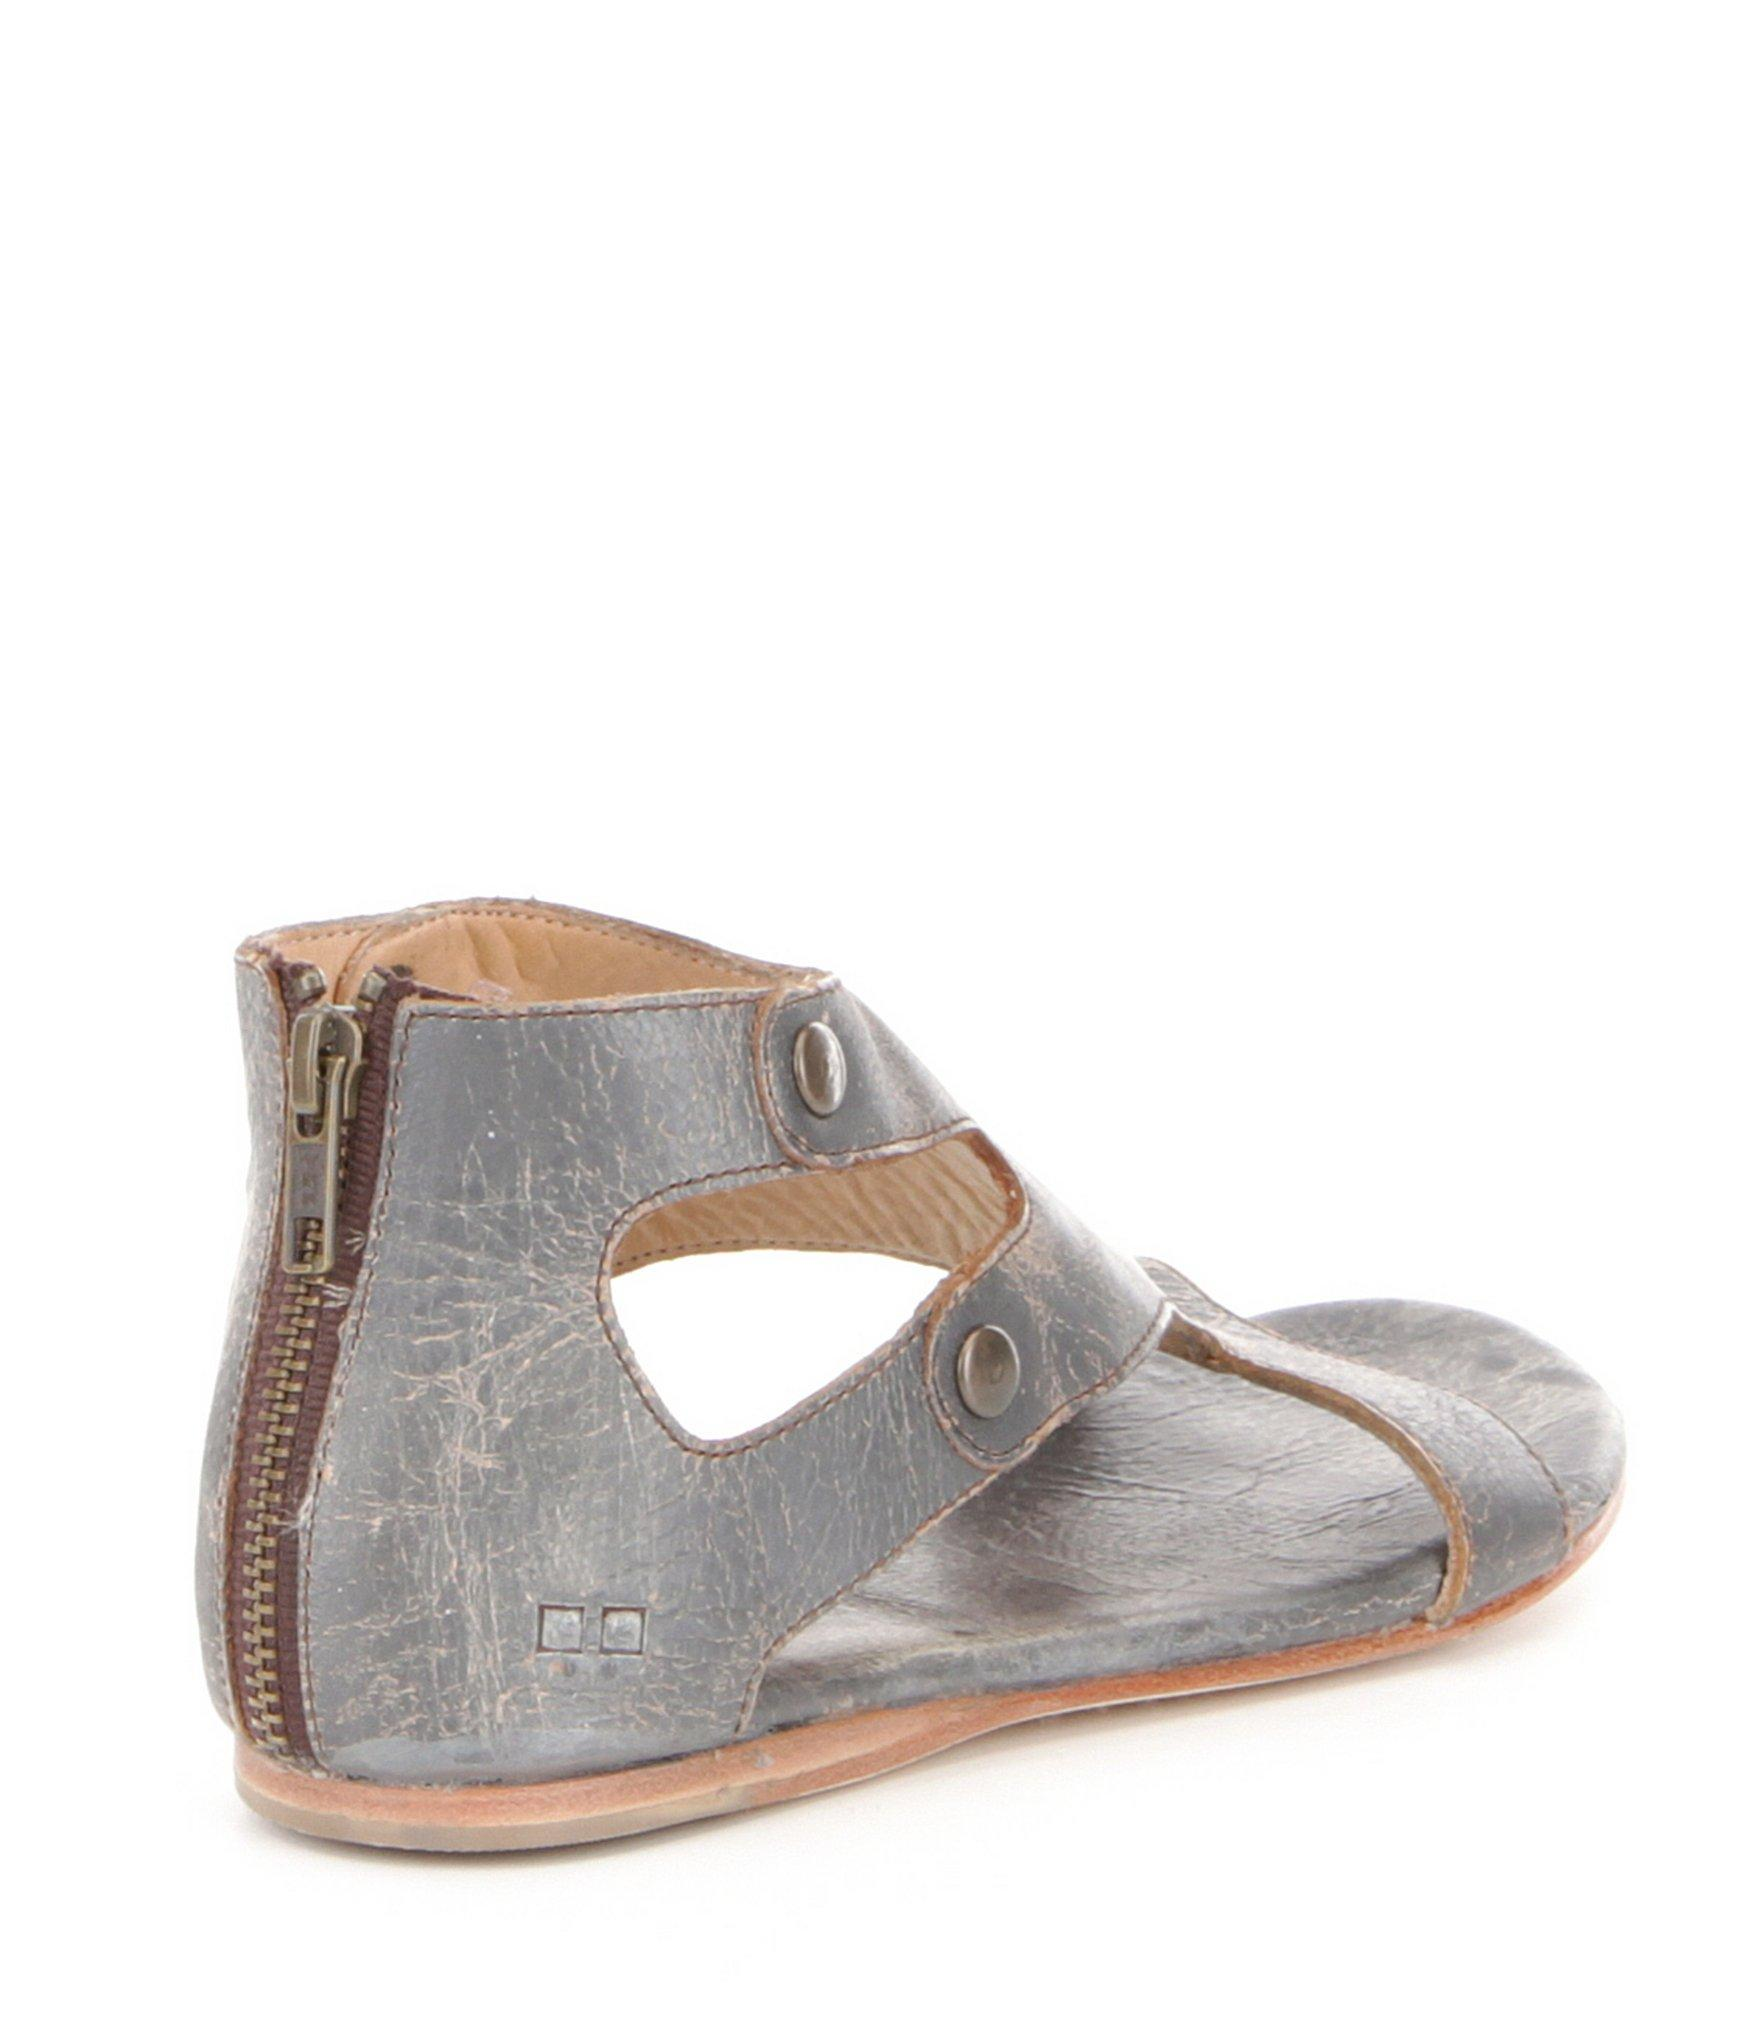 a28f4b8aef2f Bed Stu - Multicolor Soto Studded Leather Flat Sandals - Lyst. View  fullscreen